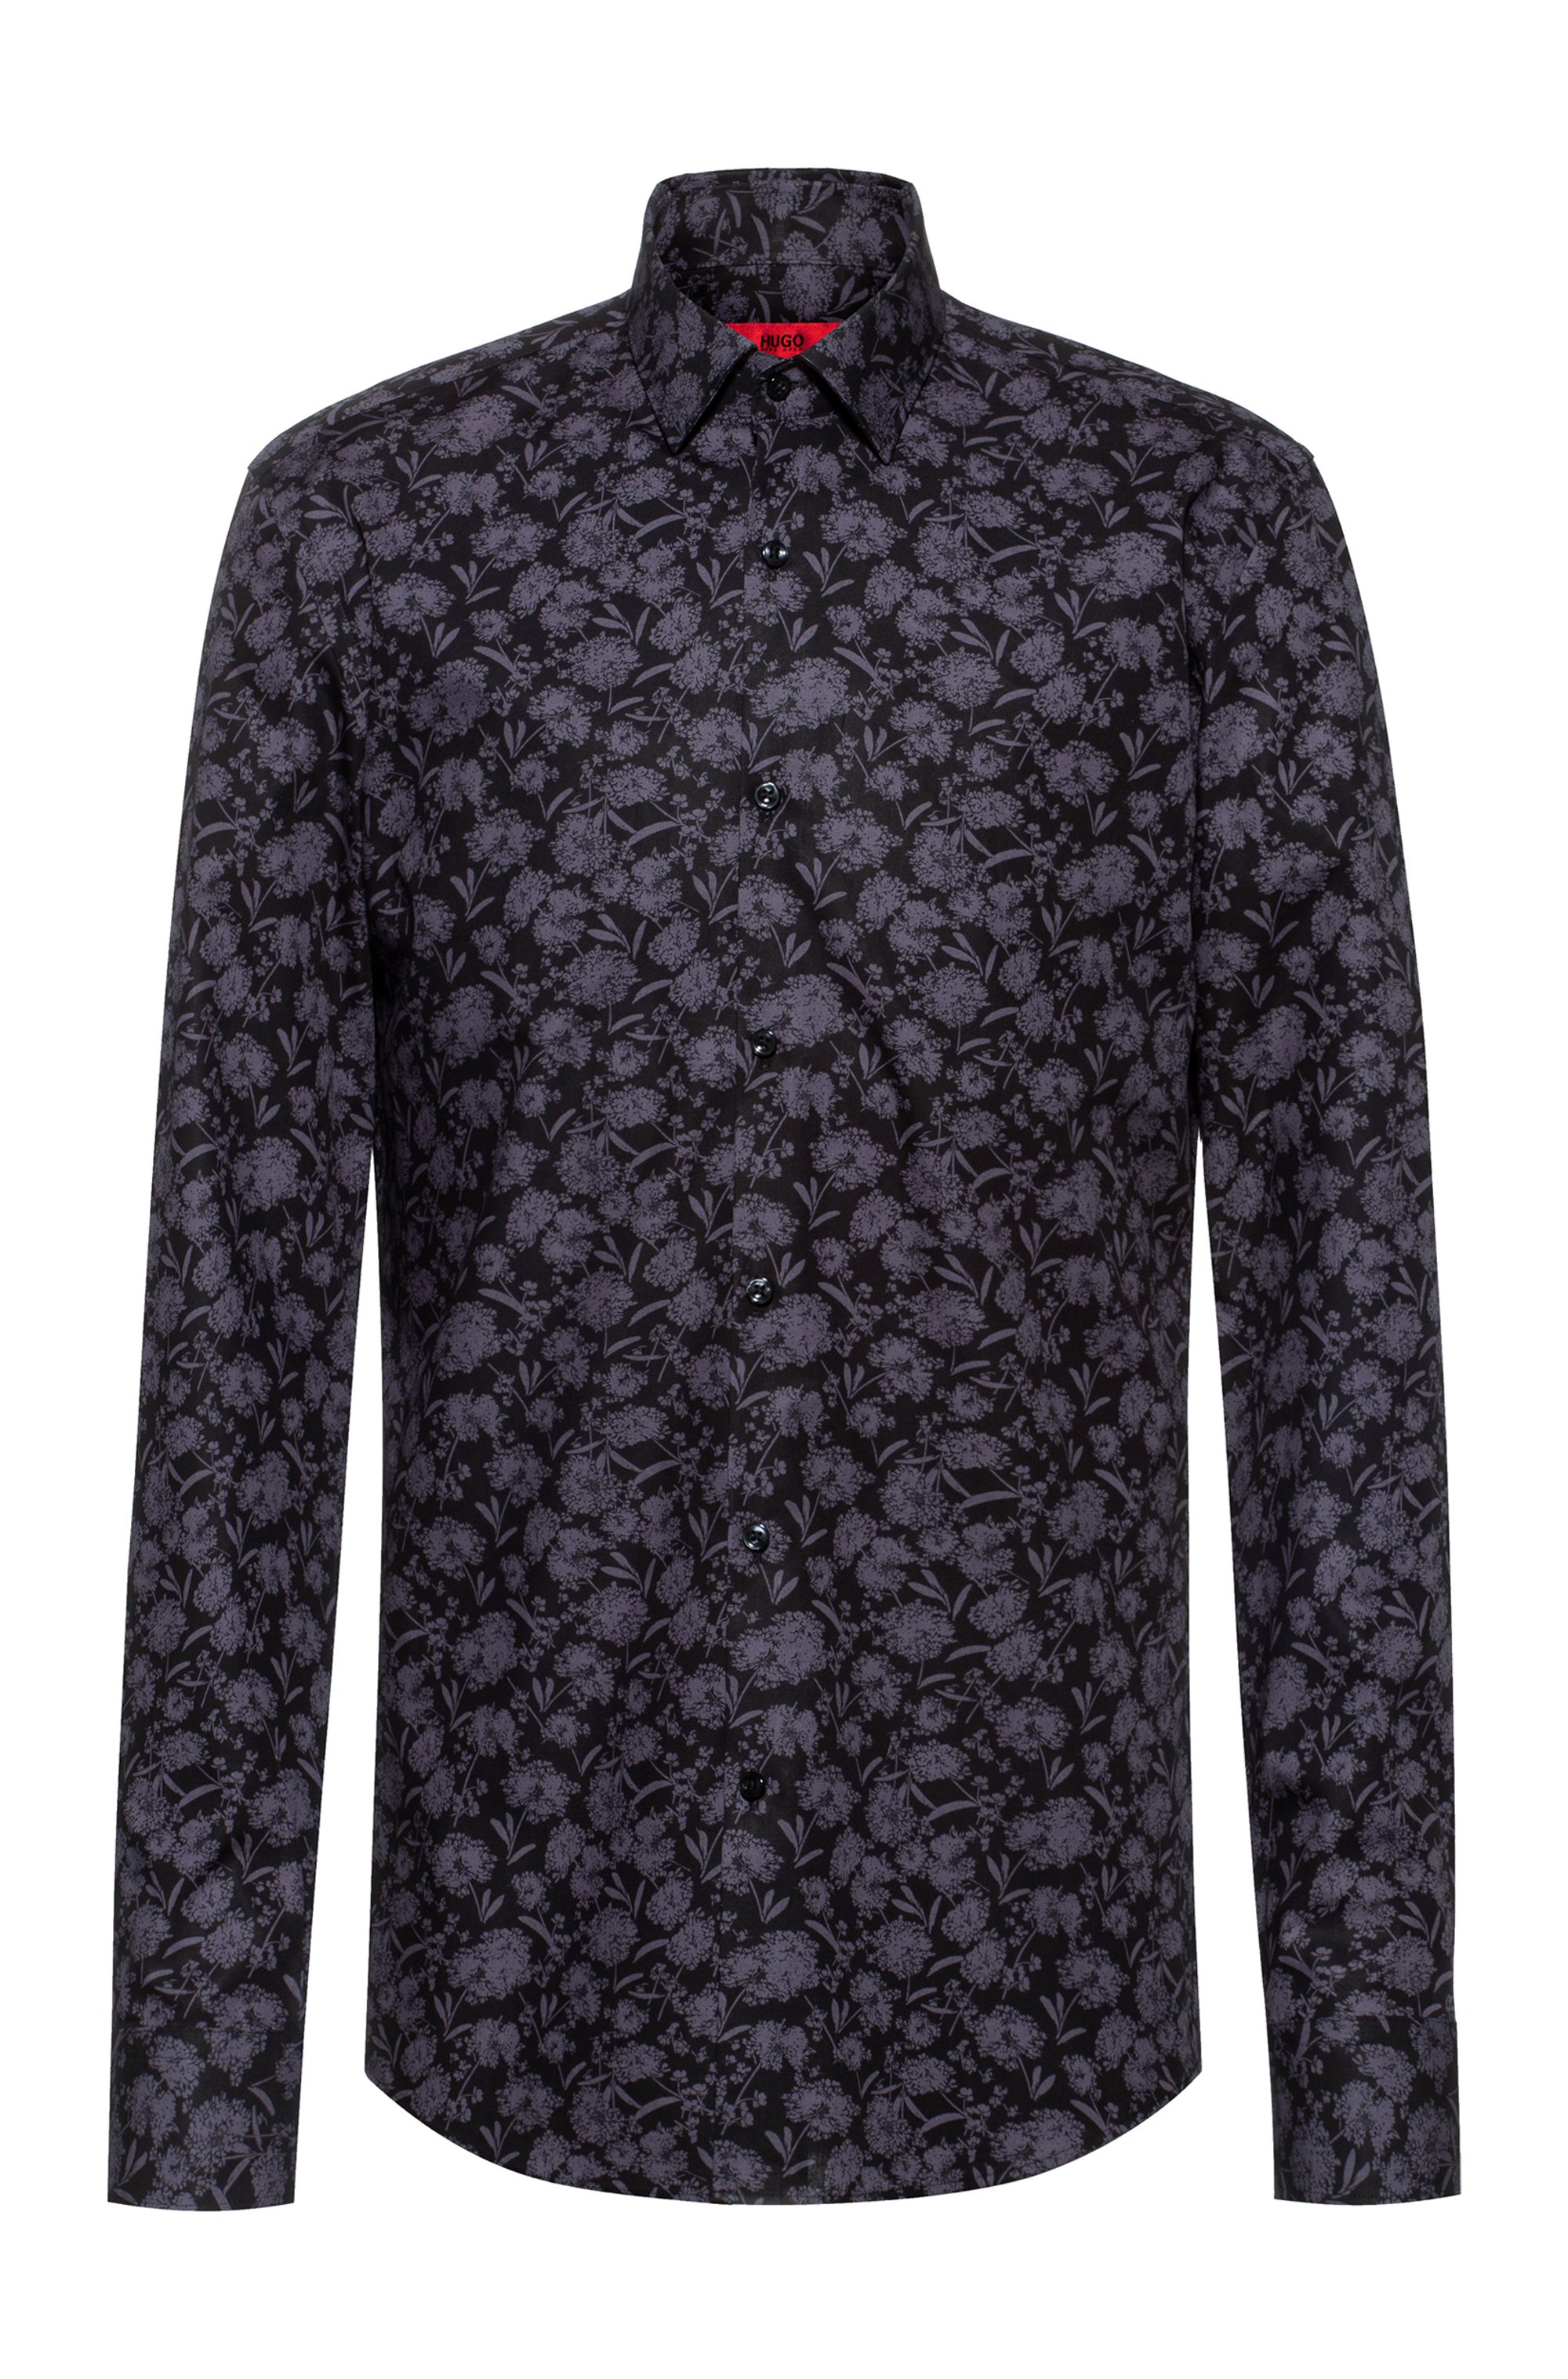 Slim-fit shirt in cotton with new-season print, Black Patterned